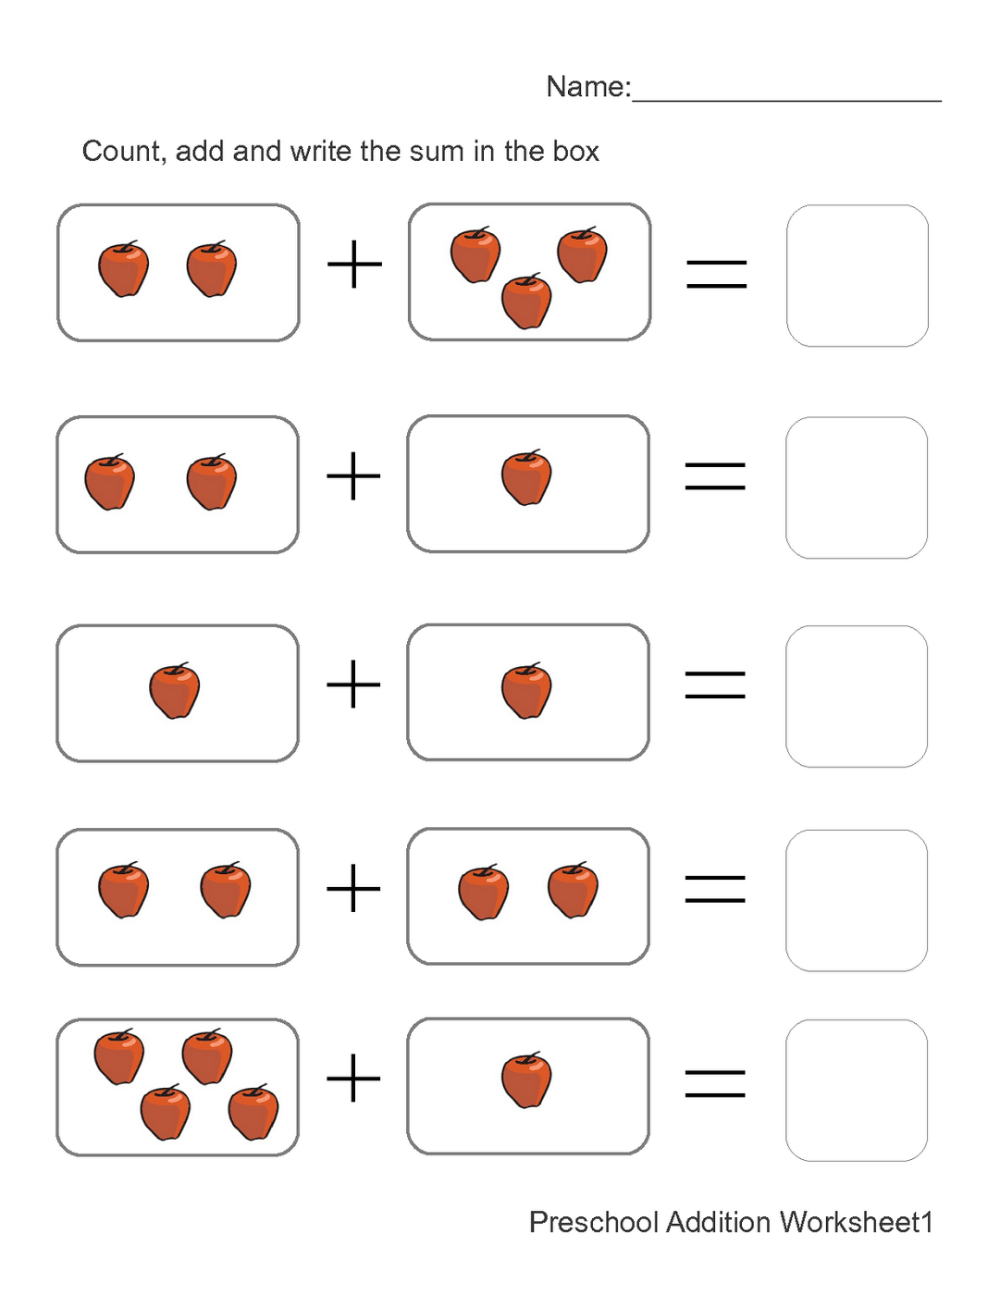 Free Printable Activities For Kids Learning Printable Kids Worksheets Printables Fun Worksheets For Kids Kids Math Worksheets